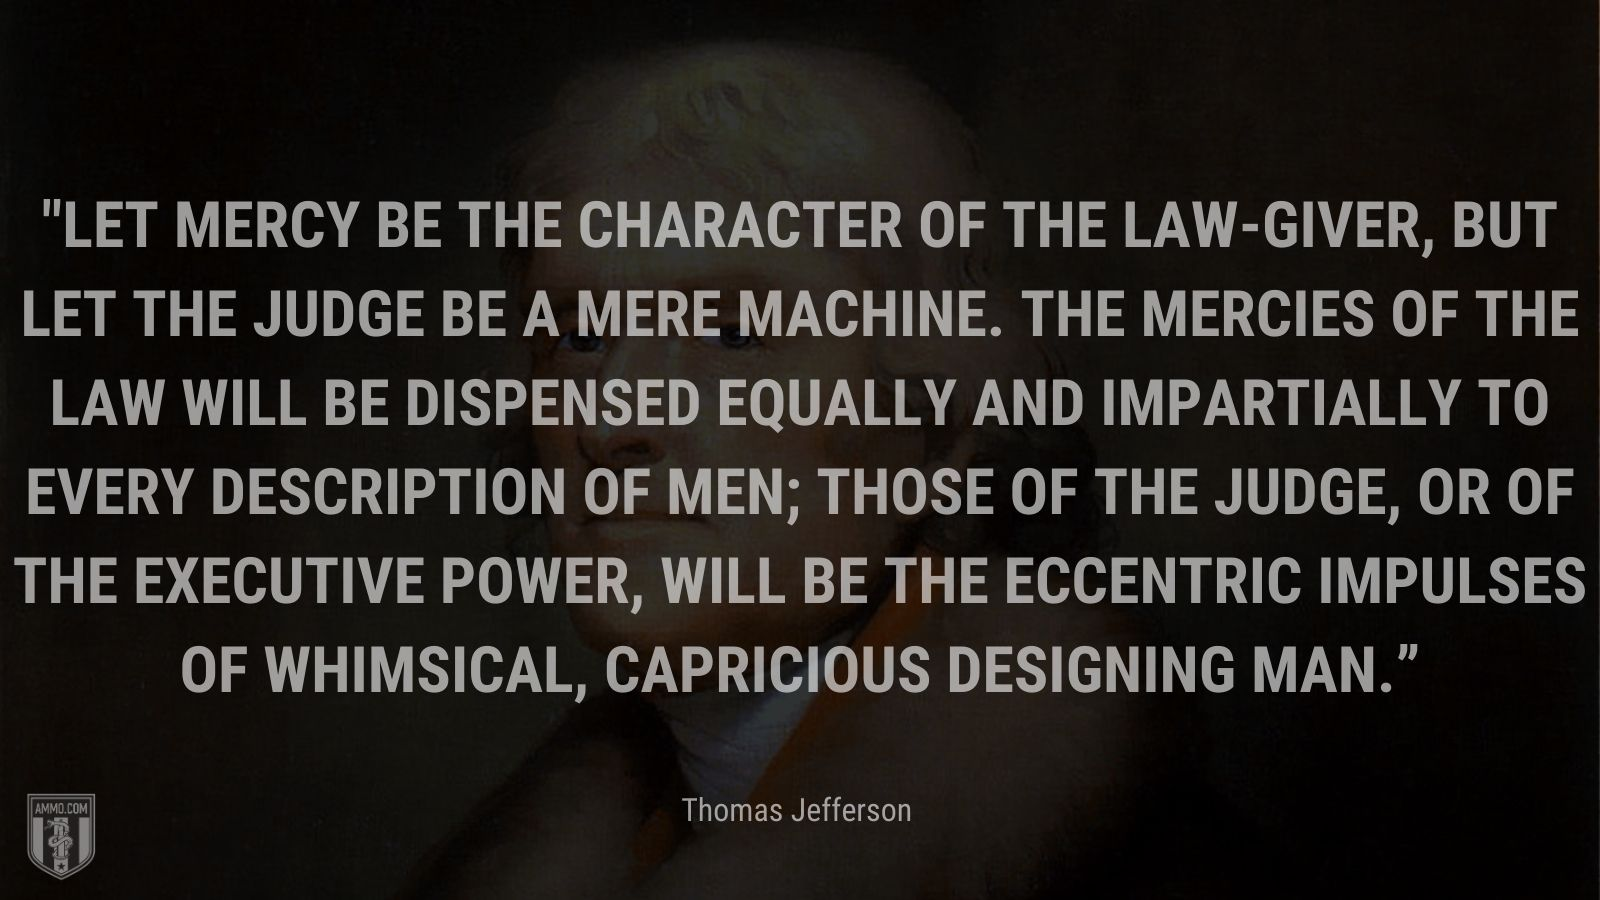 """""""Let mercy be the character of the law-giver, but let the judge be a mere machine. The mercies of the law will be dispensed equally and impartially to every description of men; those of the judge, or of the executive power, will be the eccentric impulses of whimsical, capricious designing man."""" - Thomas Jefferson"""